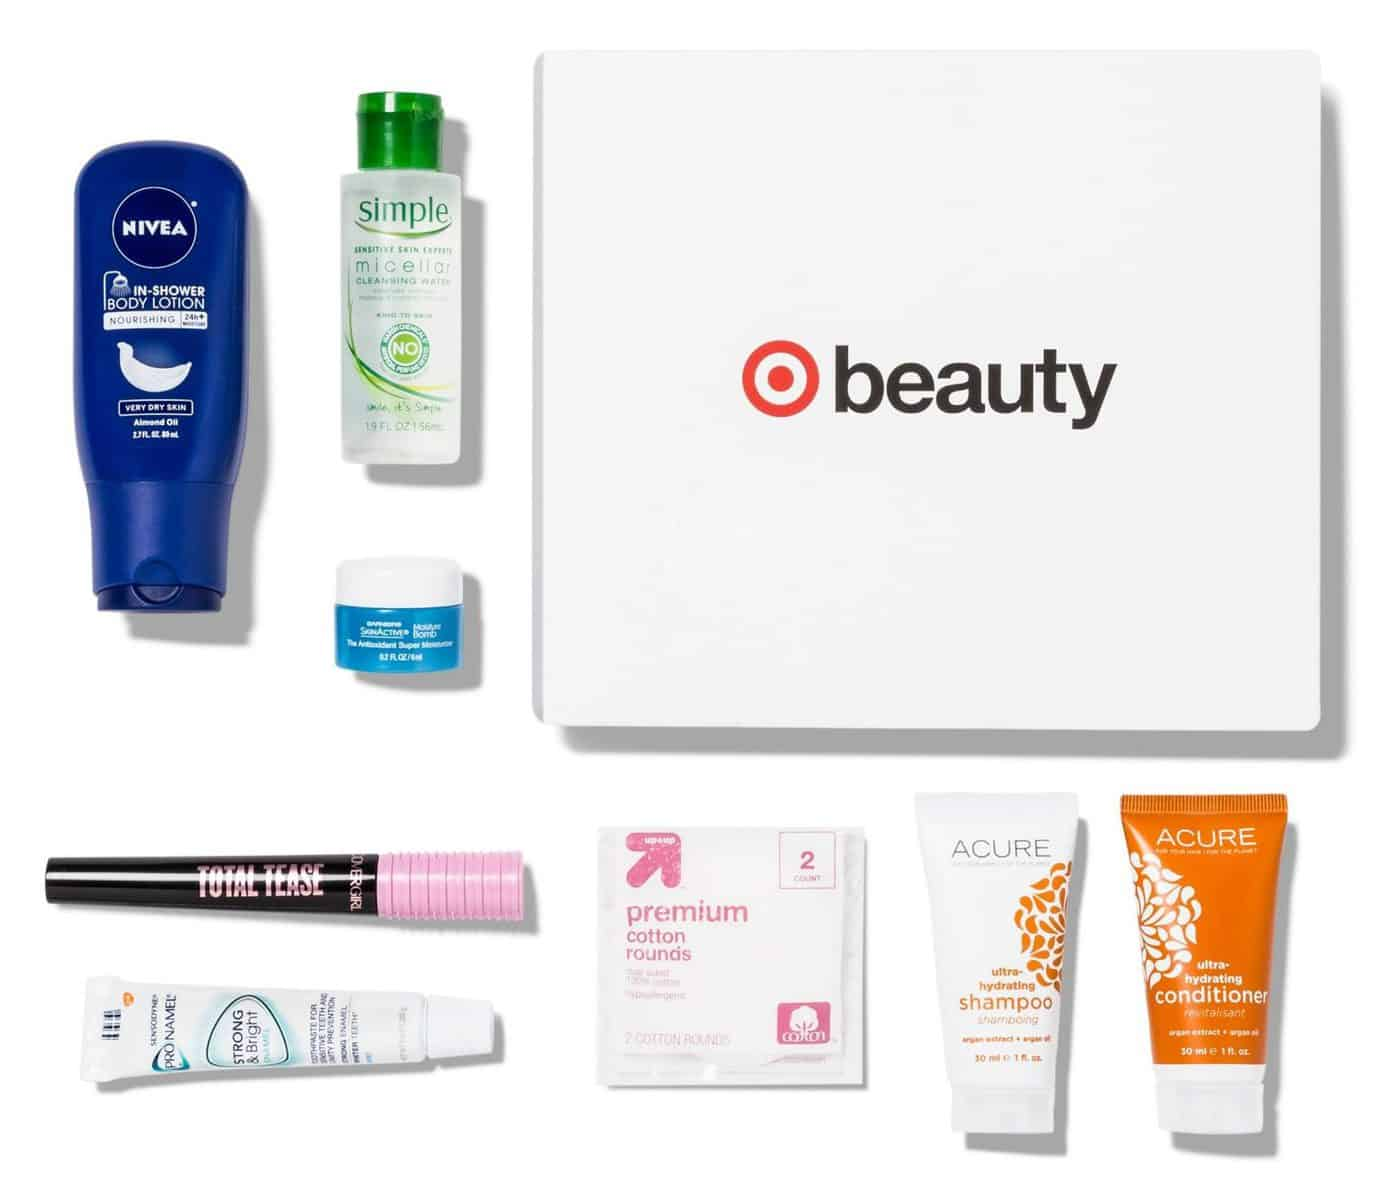 September 2017 Target Beauty Box Your New Basics Spoilers